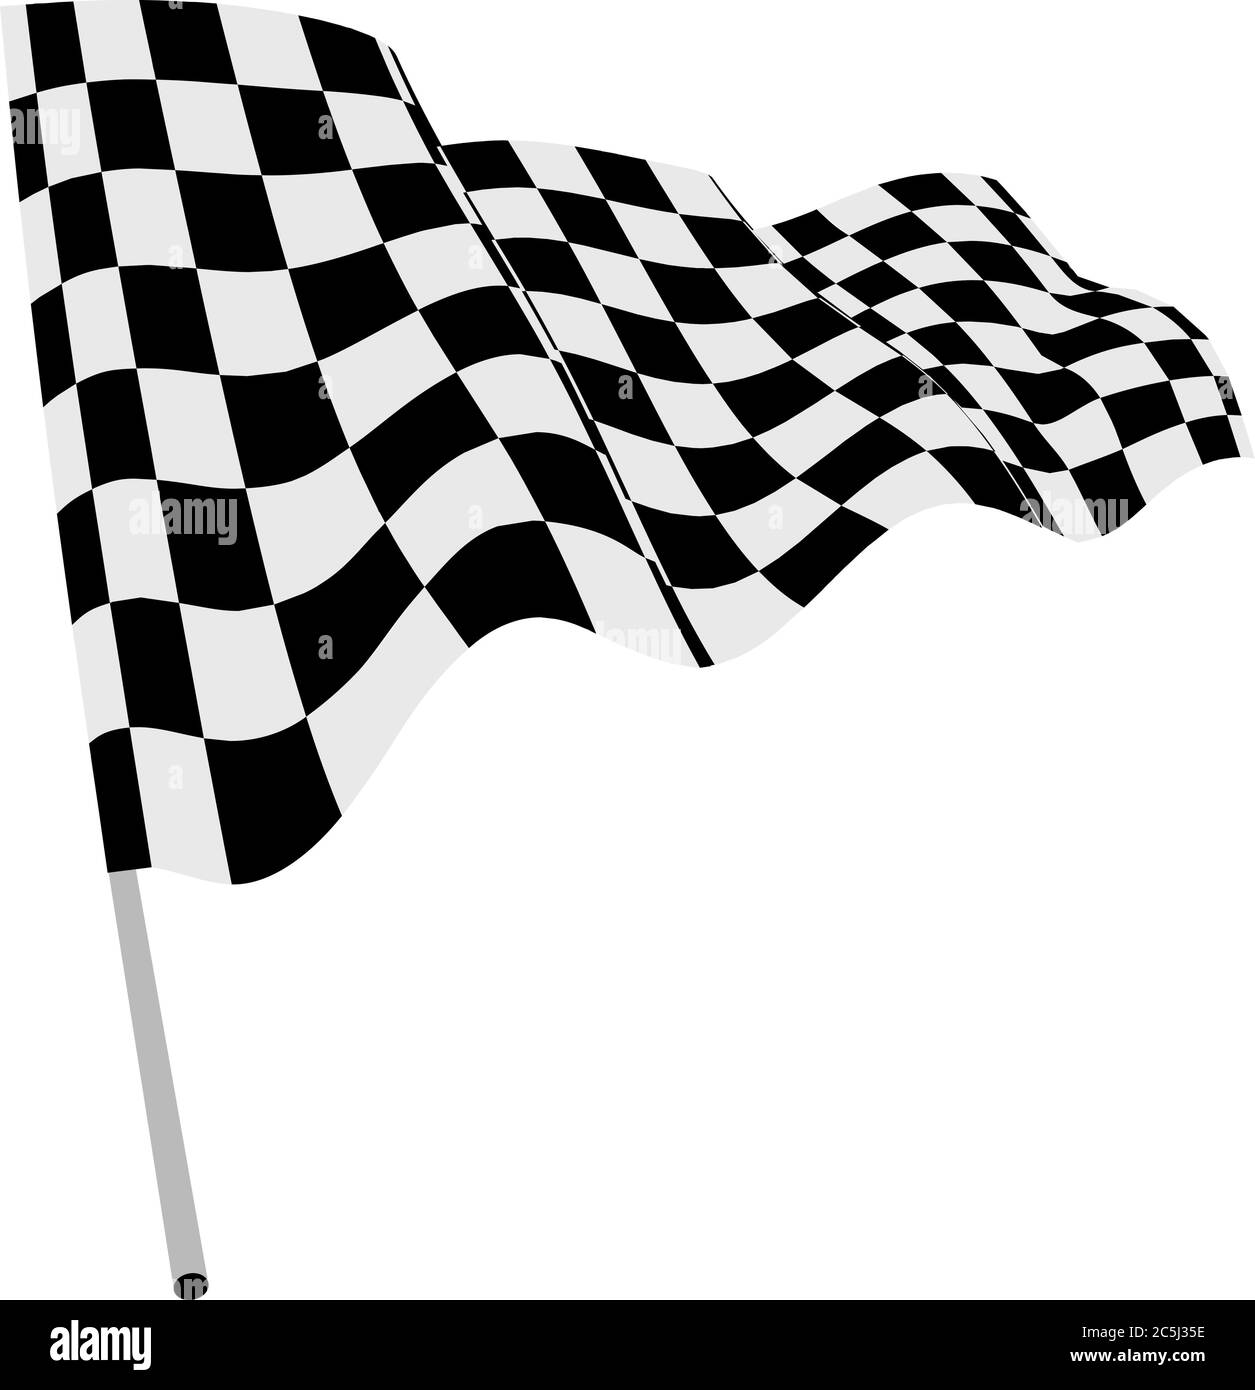 Checkered Flag Vector Illustration On White Background Stock Vector Image Art Alamy